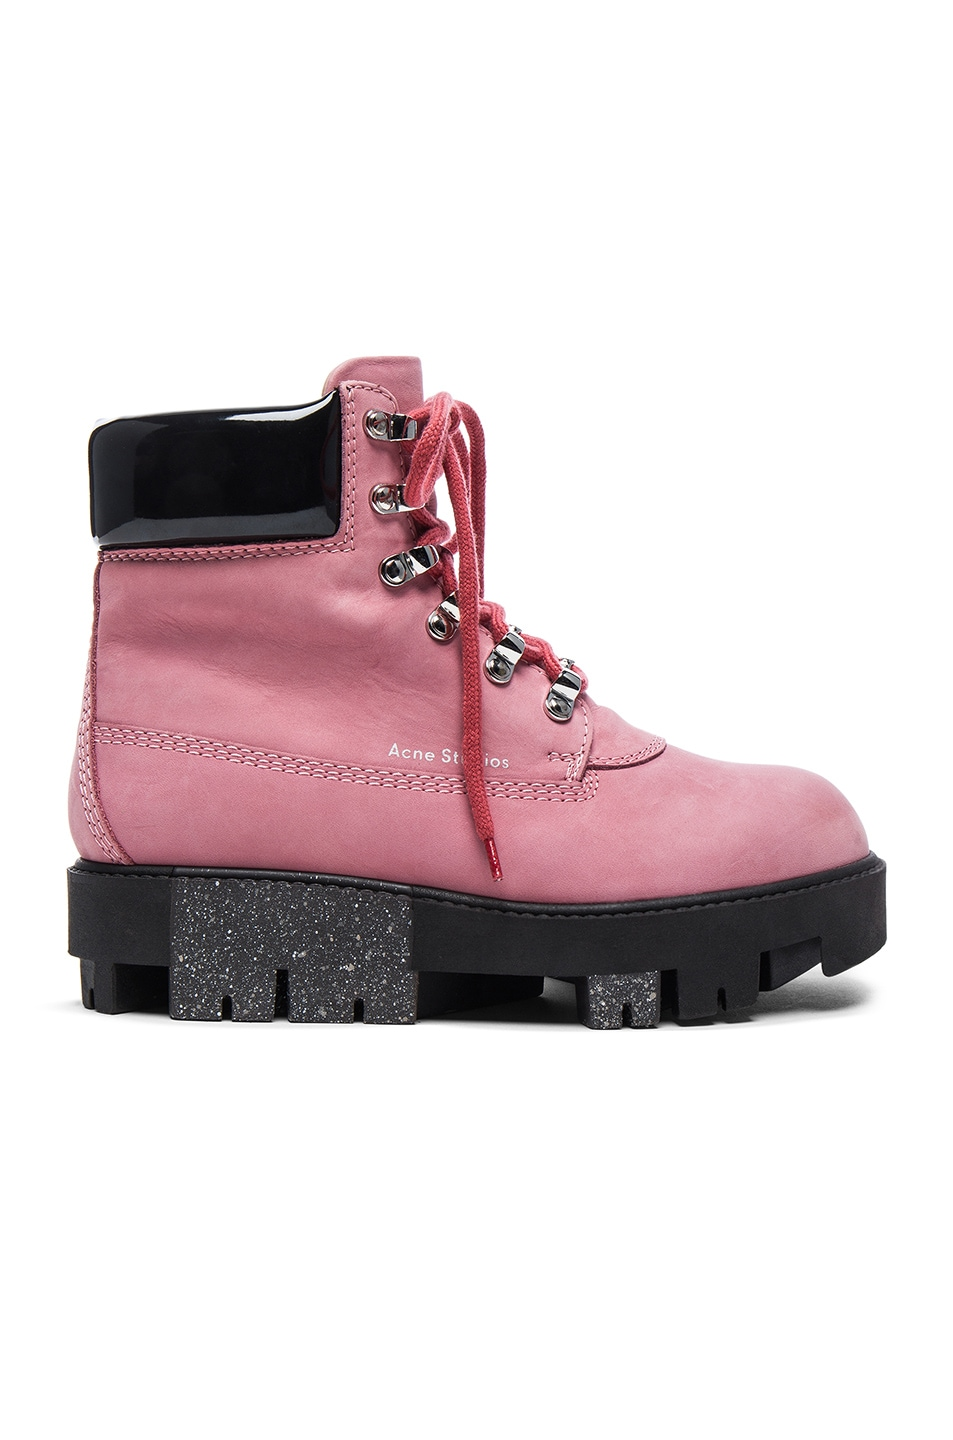 Image 1 of Acne Studios Leather Telde Boots in Bubble Pink & Black